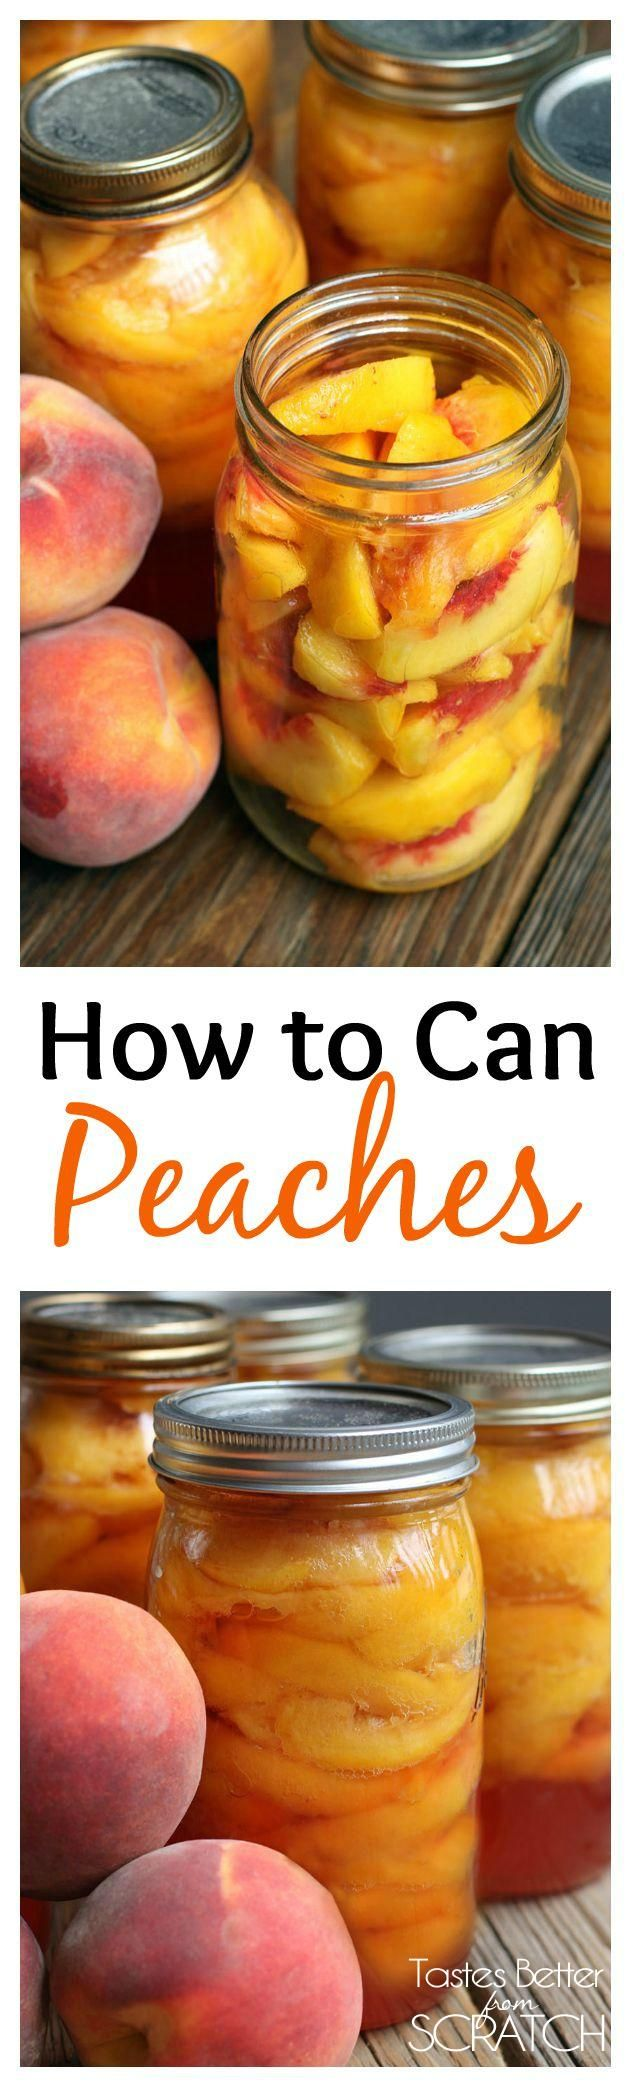 There's nothing better than home canned peaches! Find the easy instructions on TastesBetterFromScratch.com: